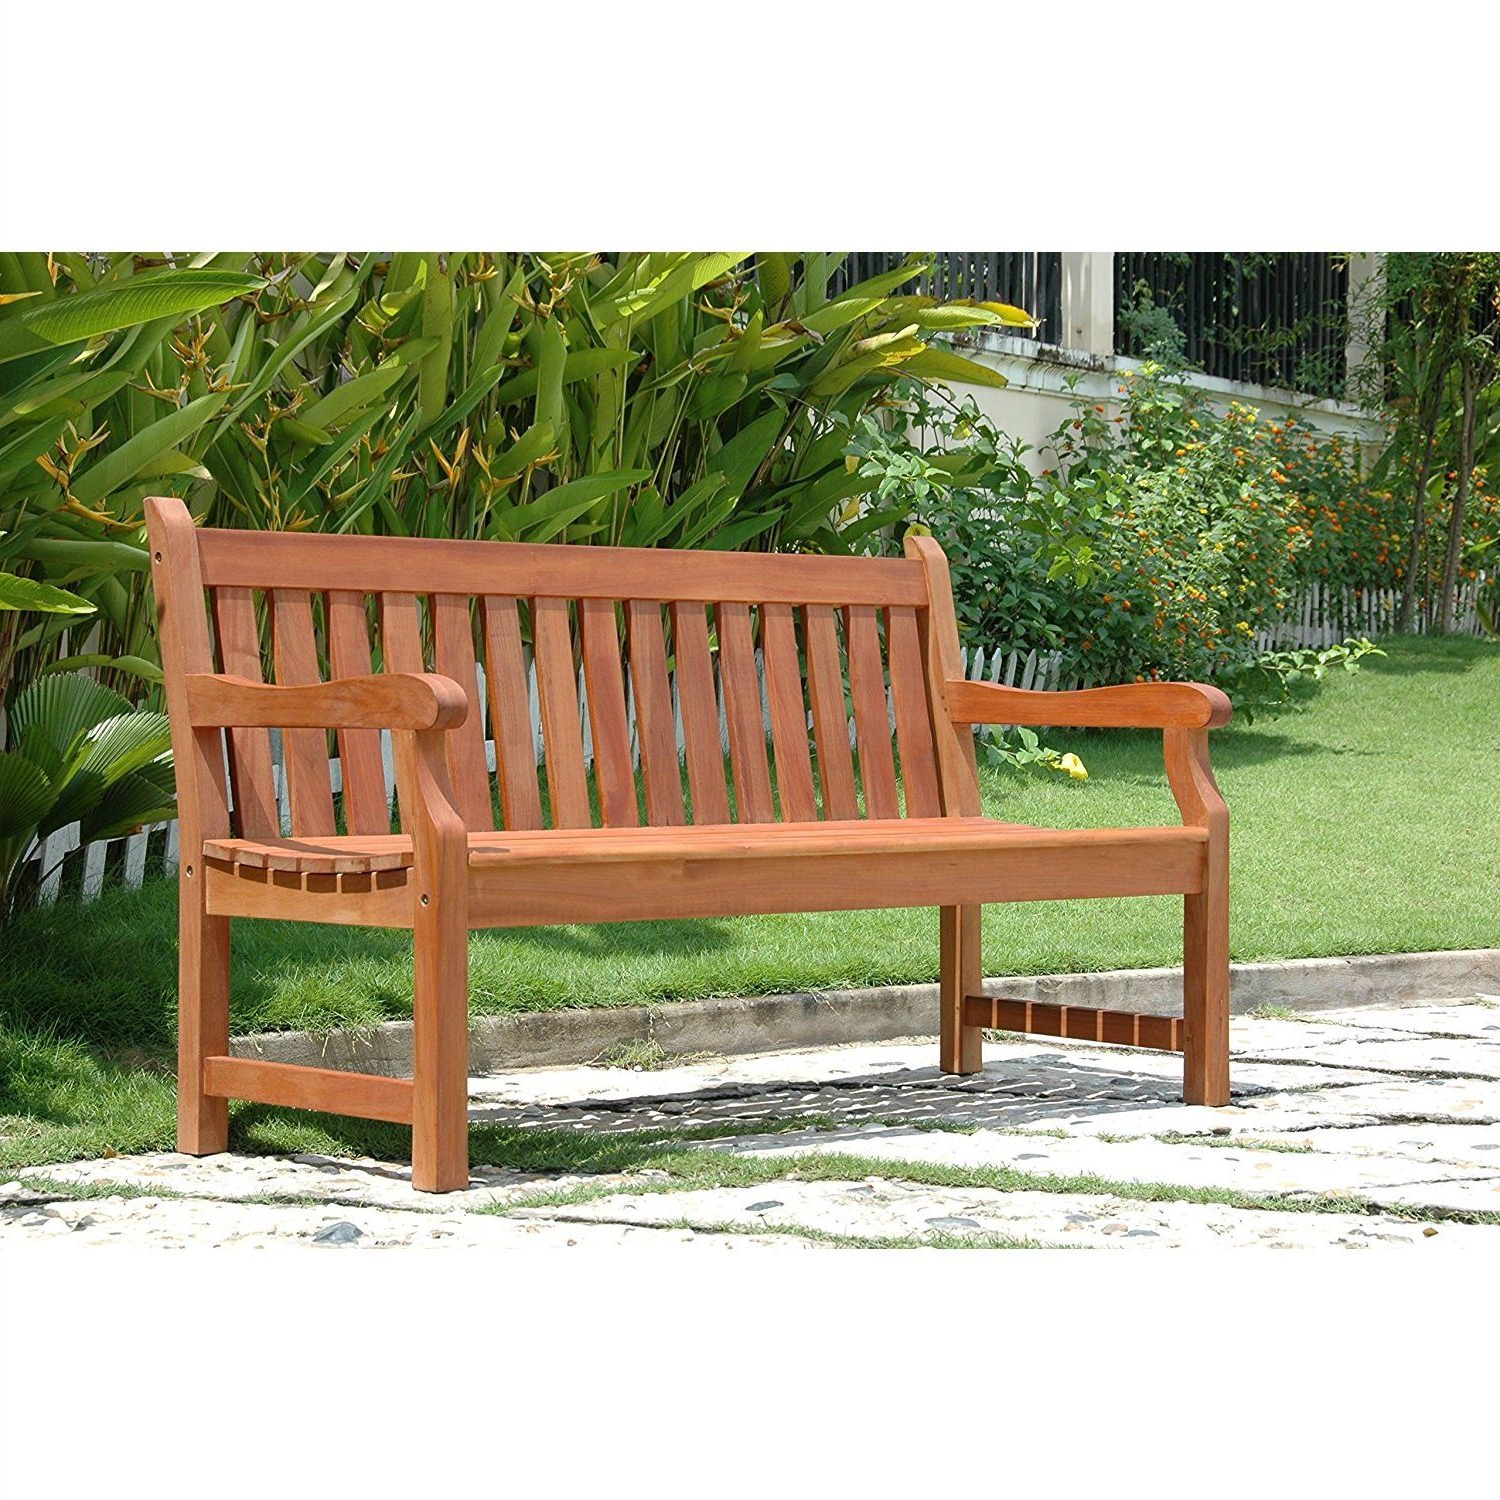 Wallie Teak Garden Benches Intended For 2019 Outdoor Eucalyptus Wood 5 Ft Garden Bench With Natural (View 8 of 30)